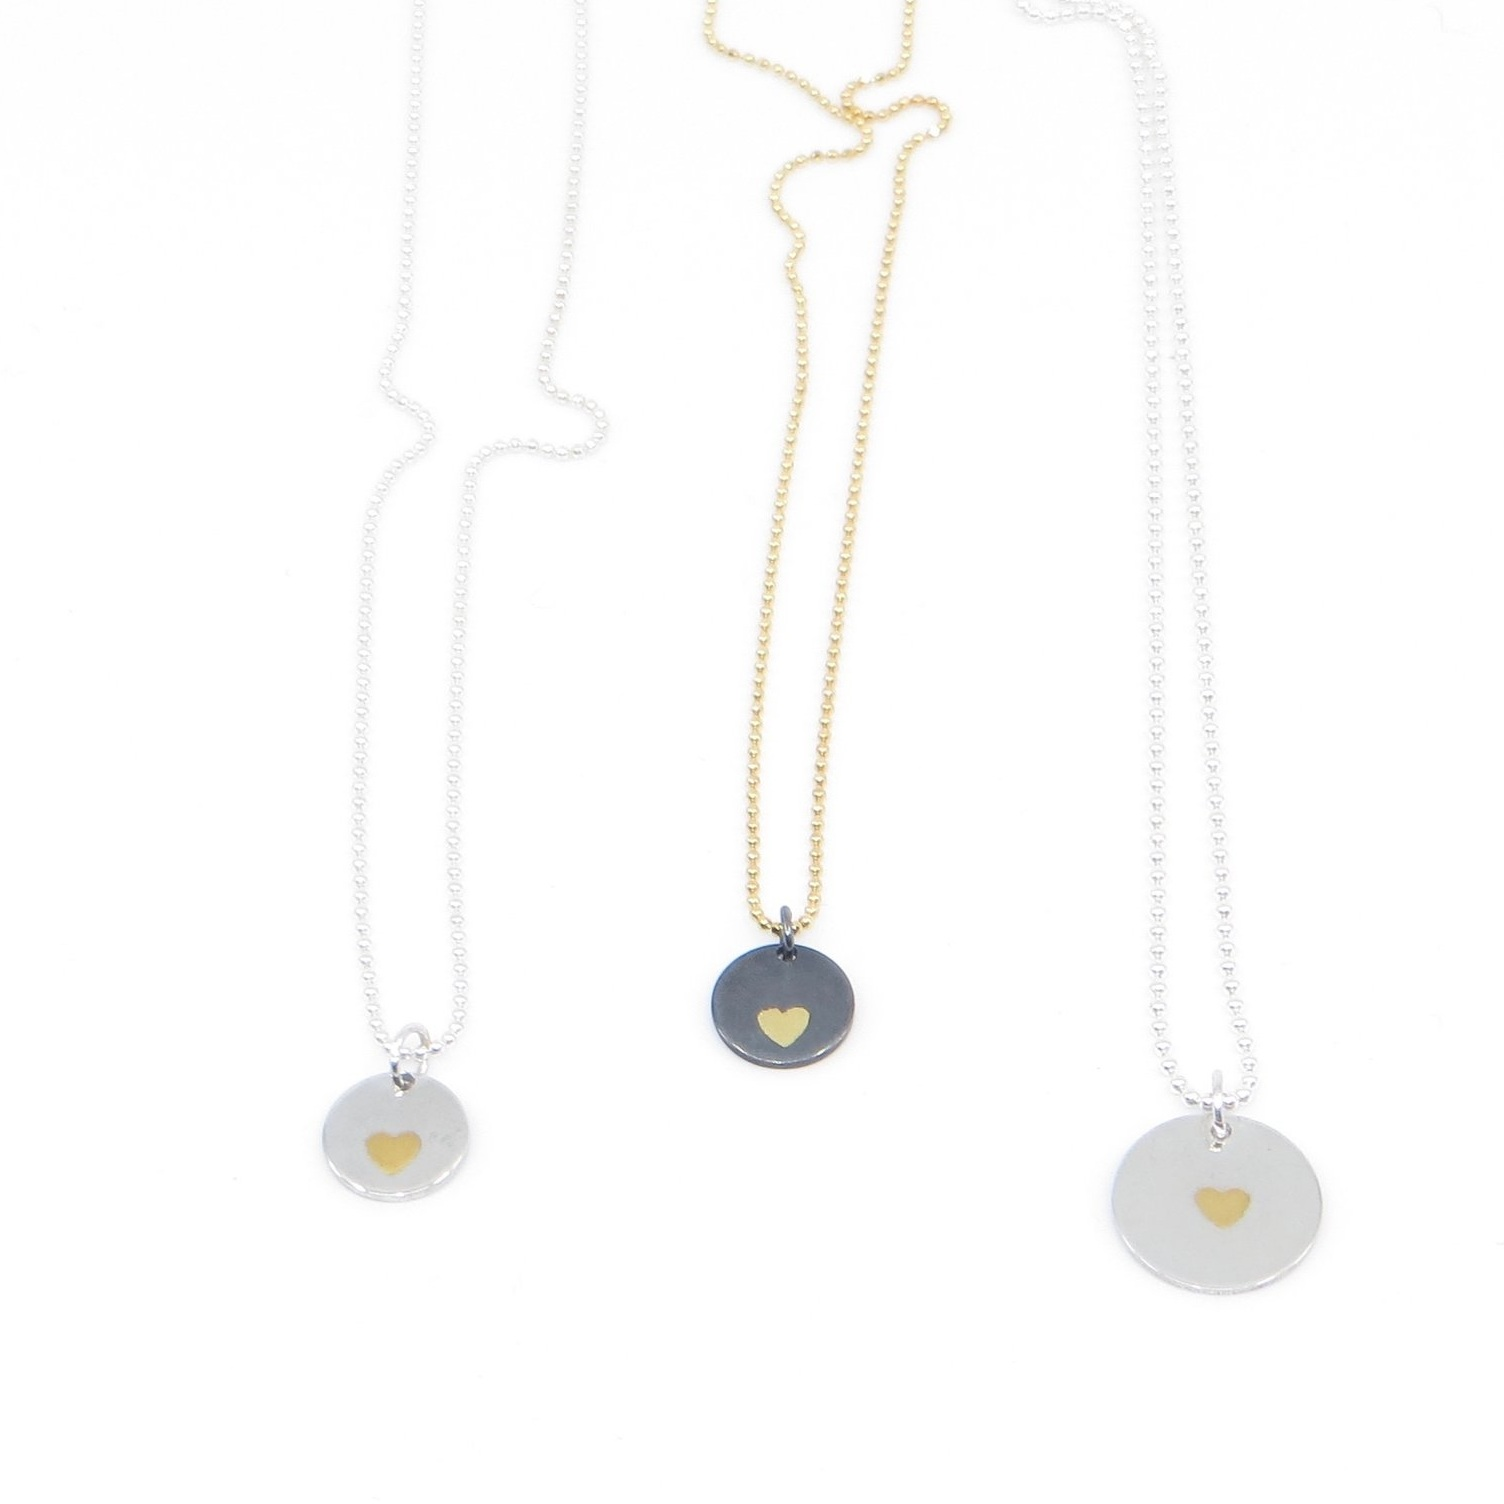 Sweetheart necklaces, keumboo with 24K gold and sterling silver, various sizes, $80 - $90